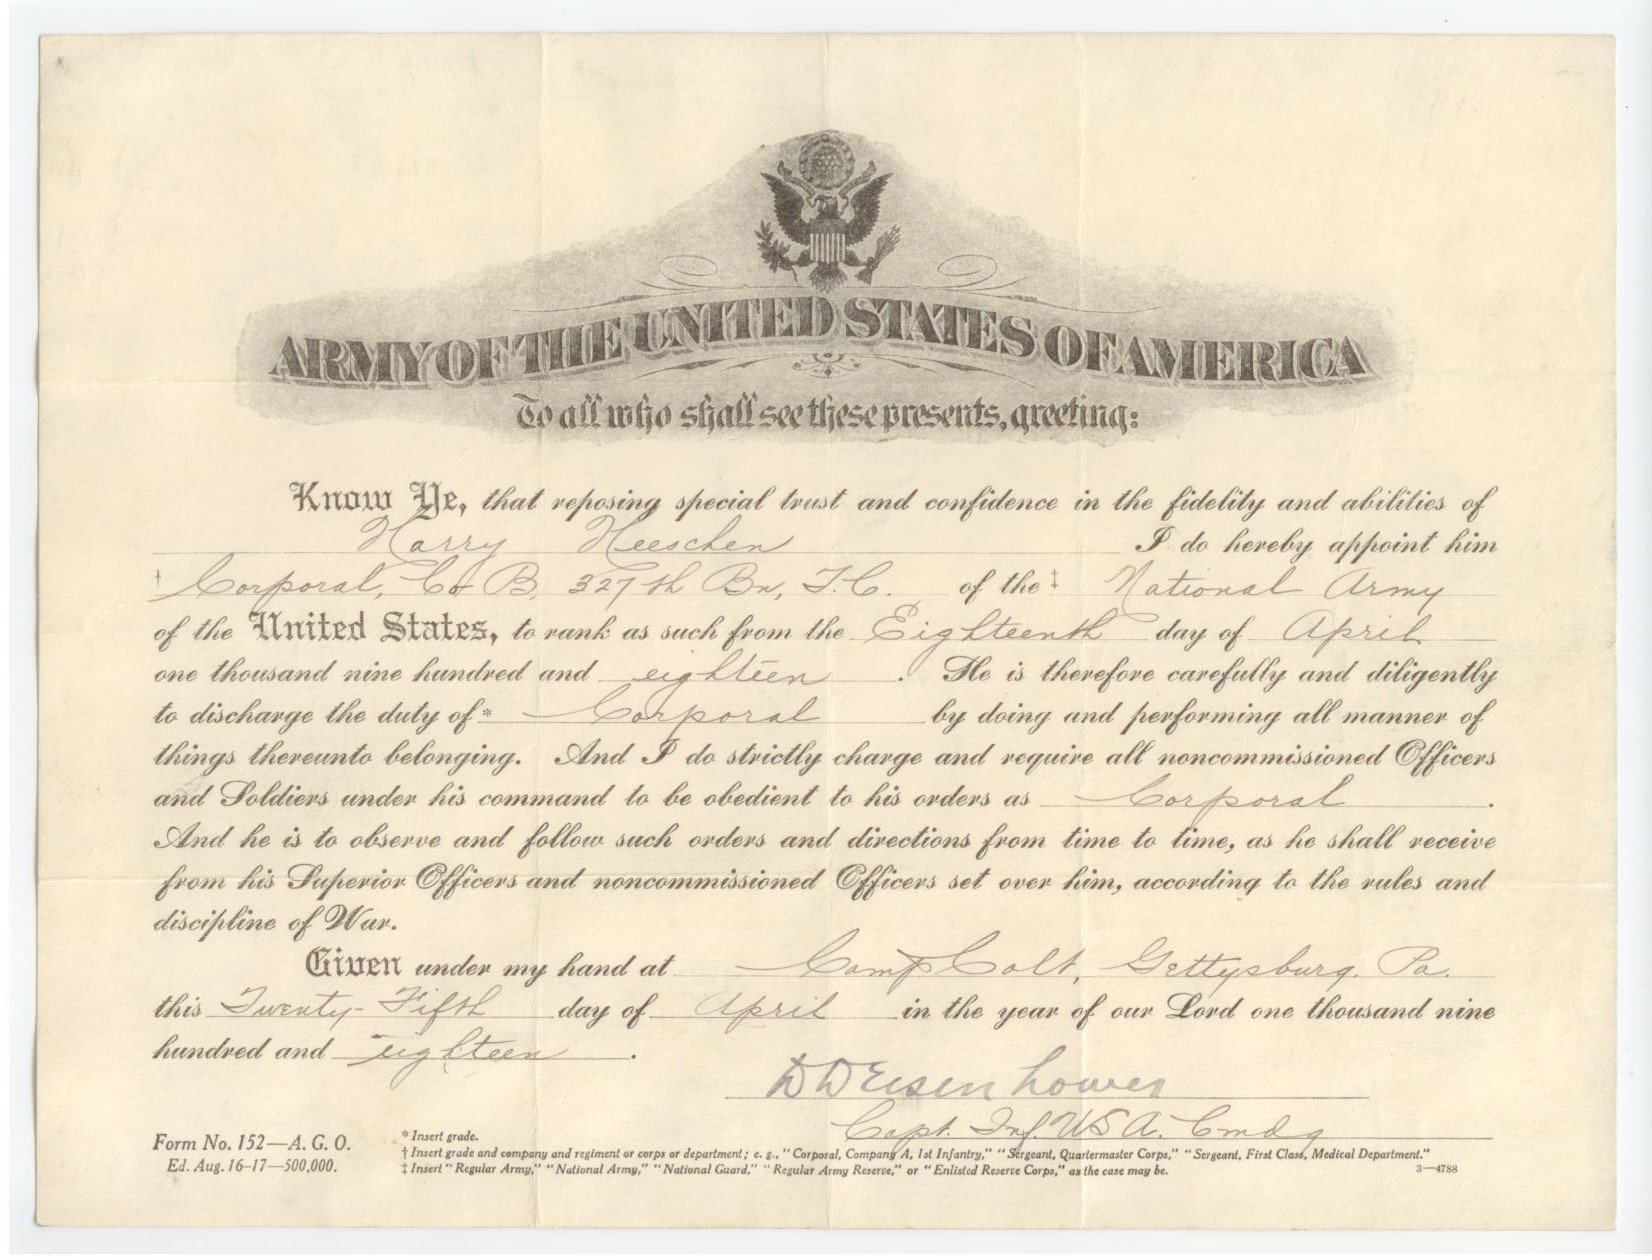 Harry Heeschen's promotion to Corporal signed by Capt. Dwight D. Eisenhower #WWI @OurPresidents https://t.co/GZ7H72NFdi